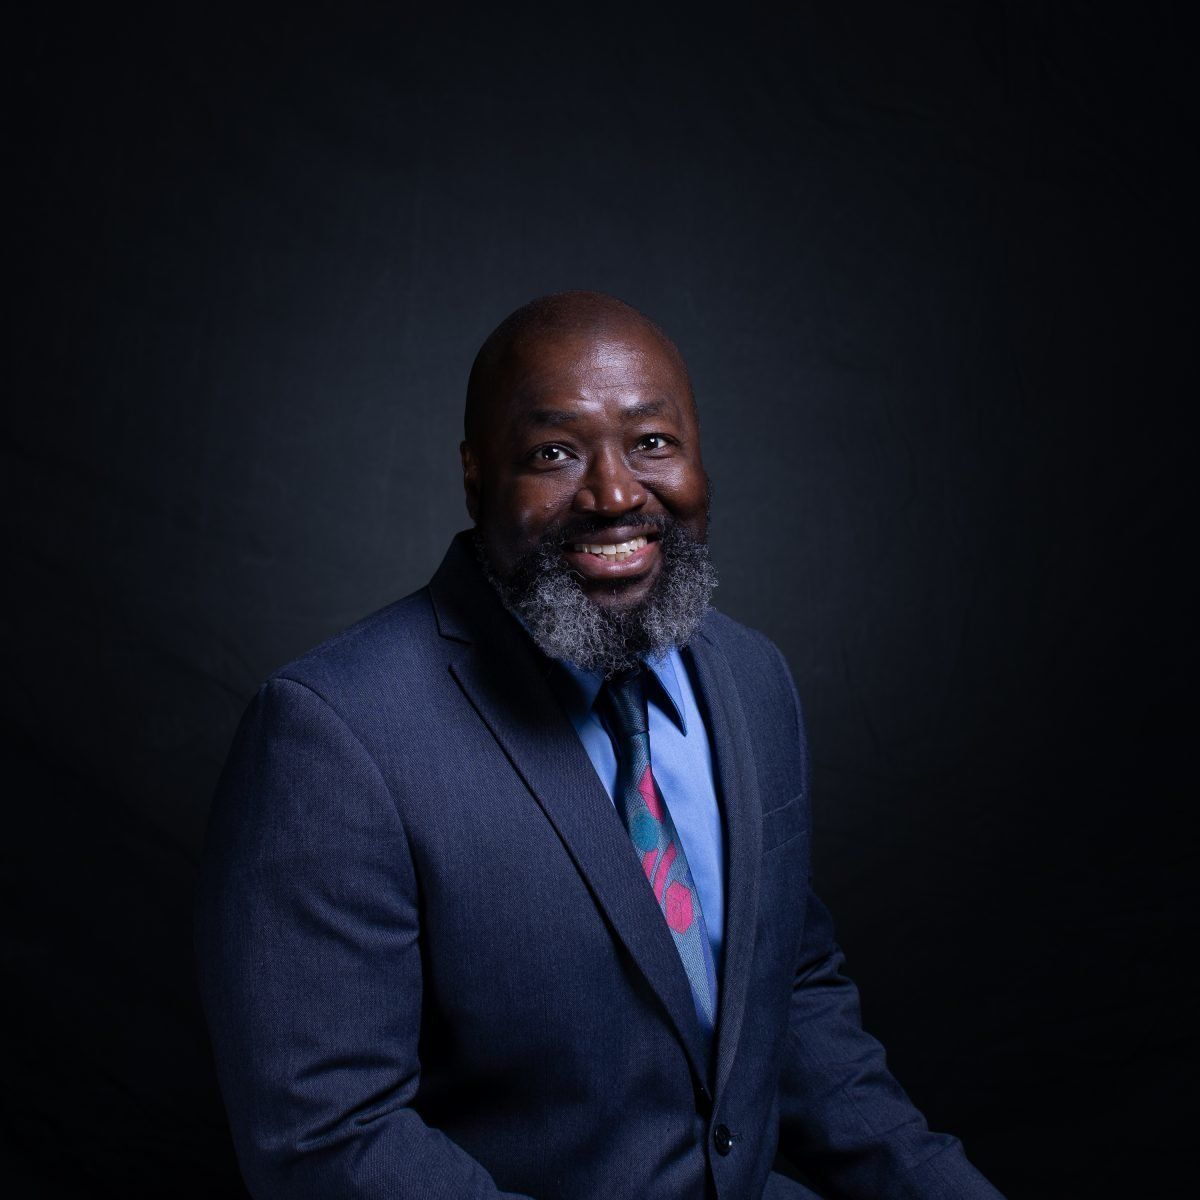 Matthew Charles, who was sentenced to 35 years in prison for drug charges and released as a result of the recently passed First Step Act, is one of Trump's State of the Union guests.